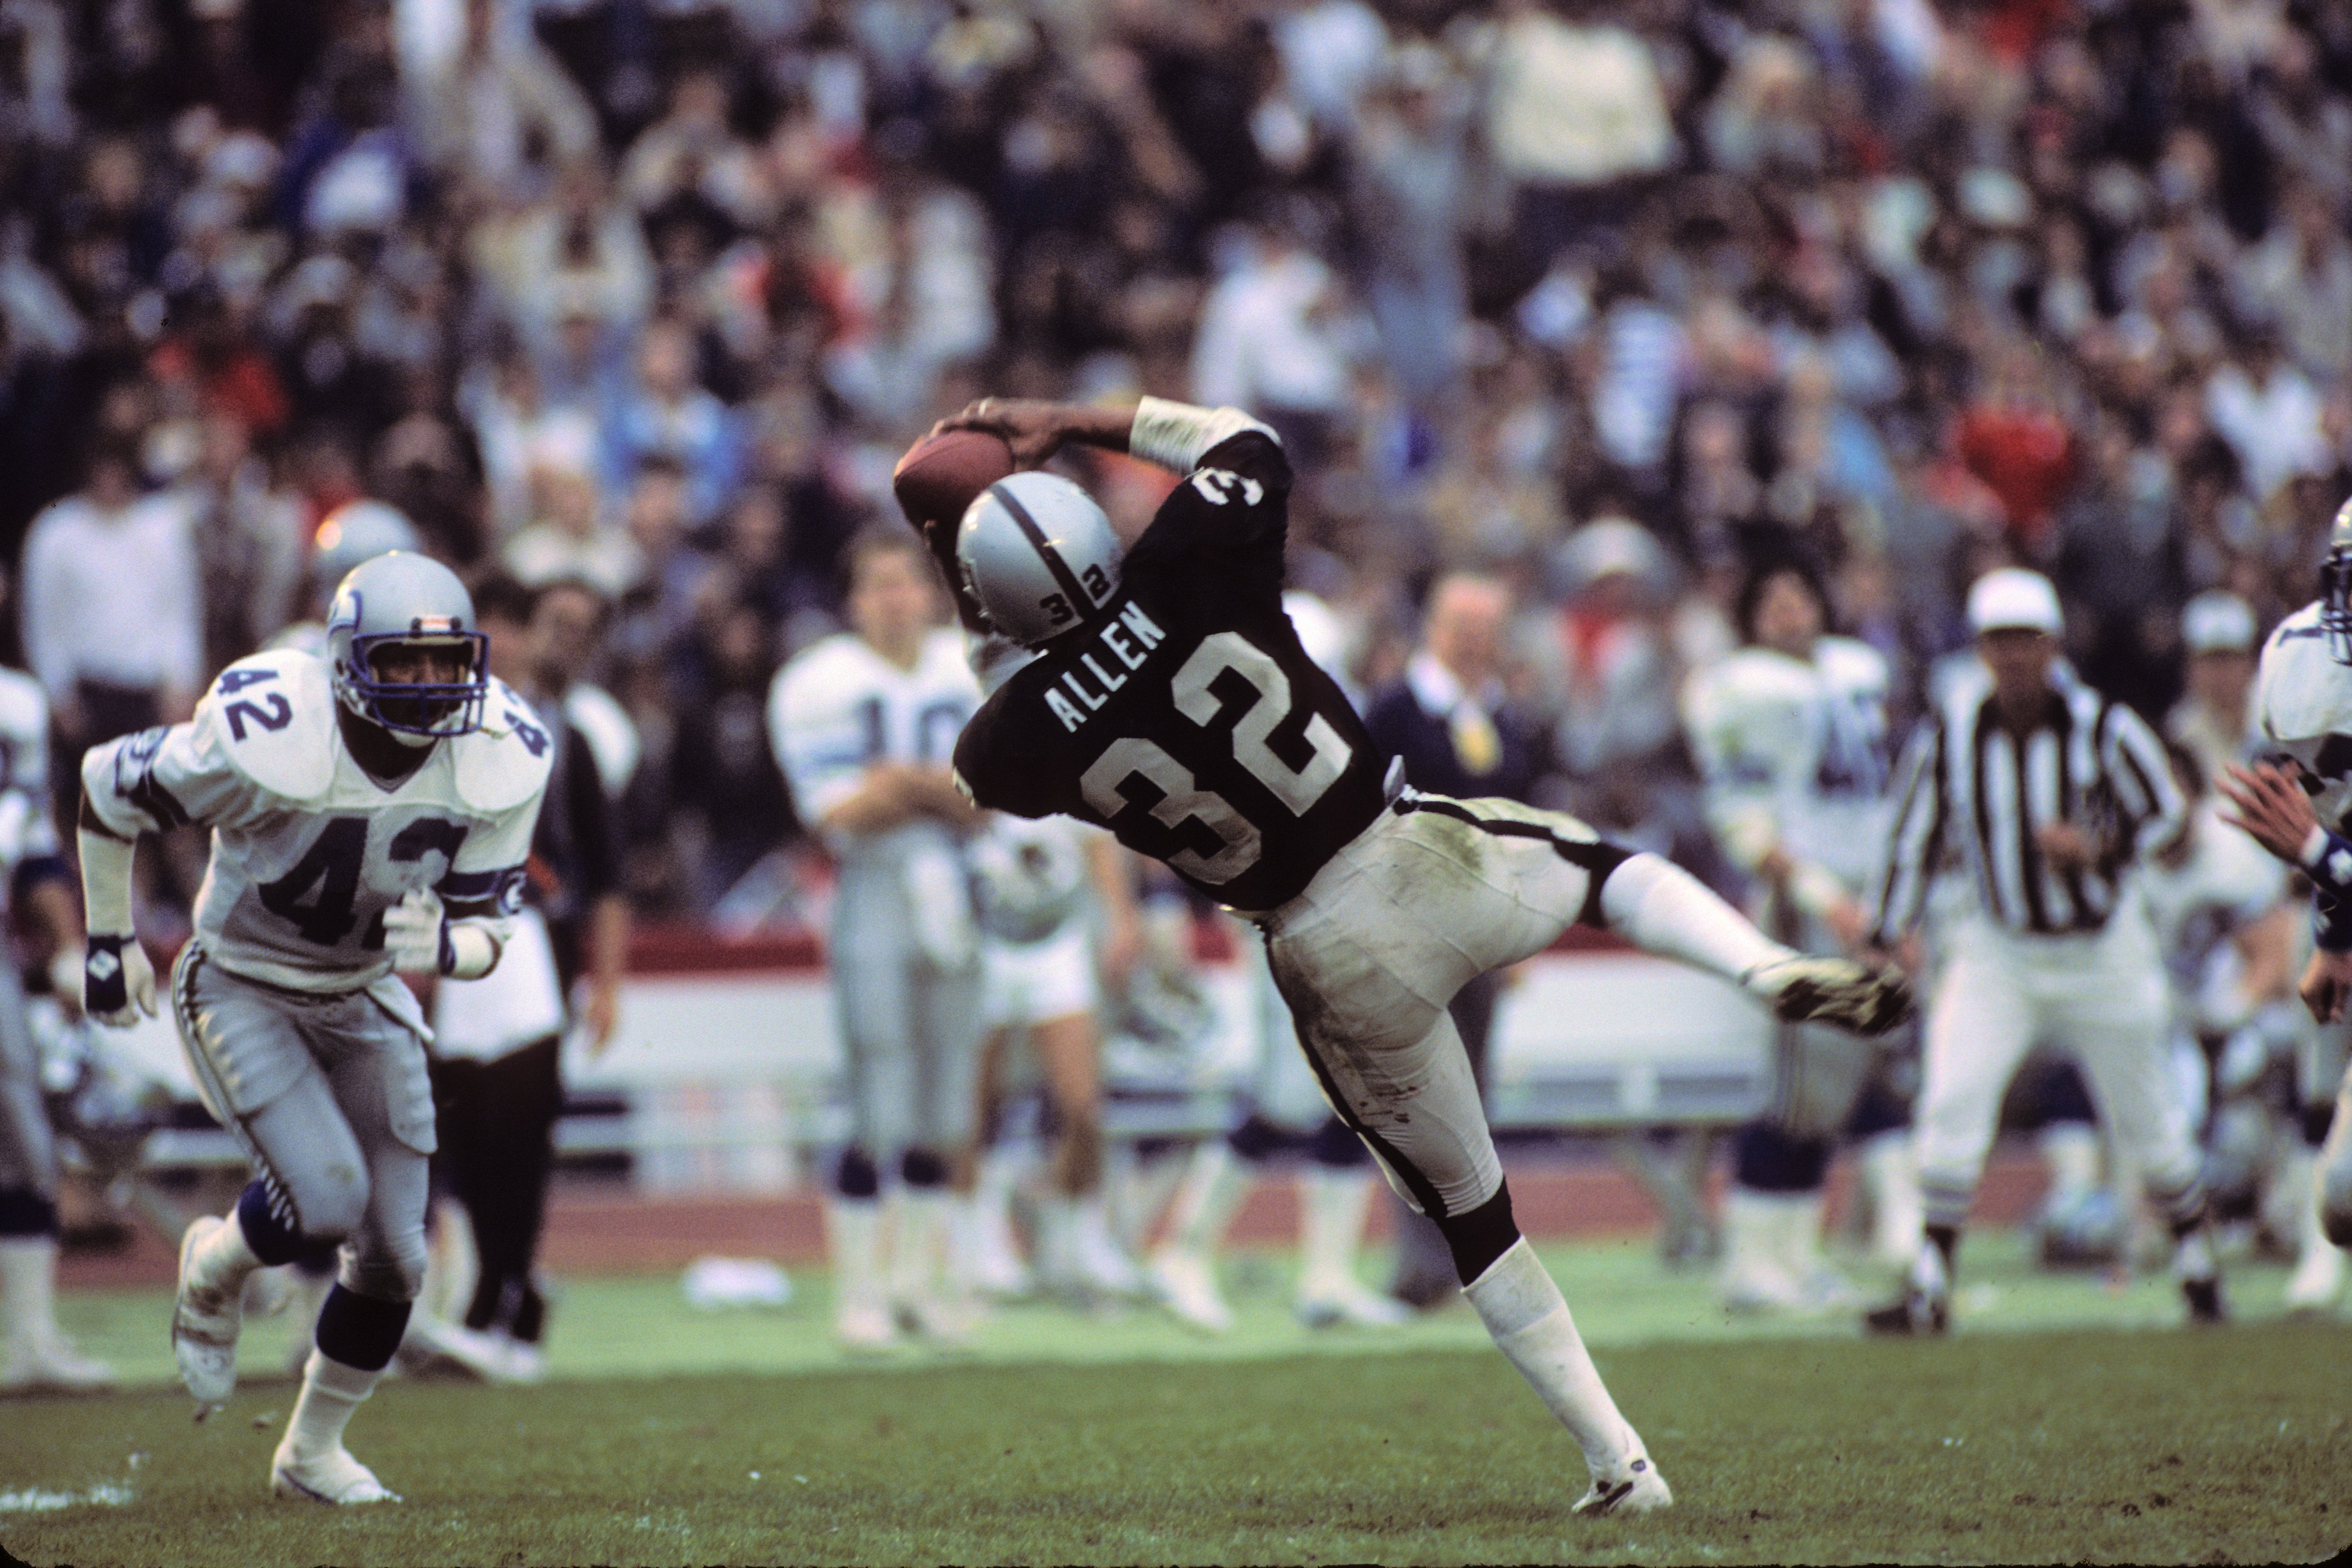 LOS ANGELES, CA - JANUARY 8:  Marcus Allen #32 of the Los Angeles Raiders catches a pass during the AFC Championship game against the Seattle Seahawks at the Los Angeles Memorial Coliseum on January 8, 1984 in Los Angeles, California.  The Raiders won 30-